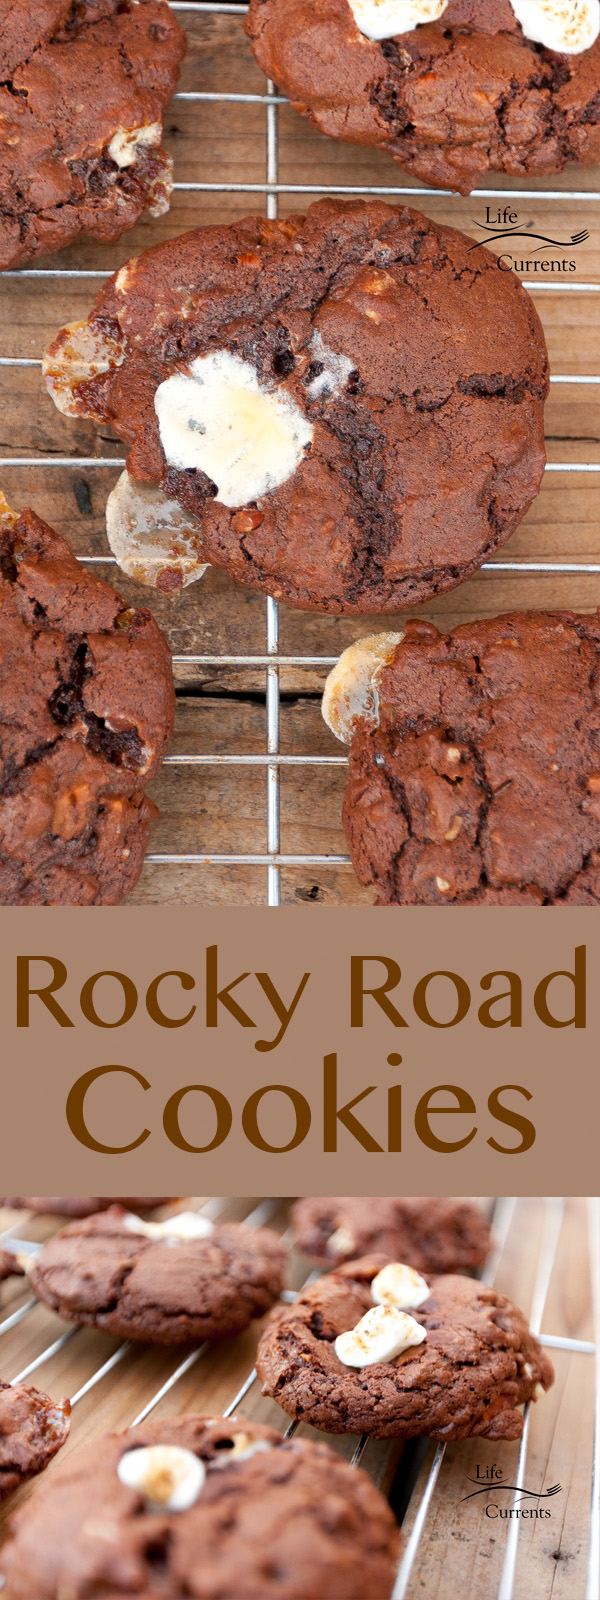 Rocky Road Cookies chocolaty good cookies packed with marshmallows and pecans. The classic flavor combination in a cookie!